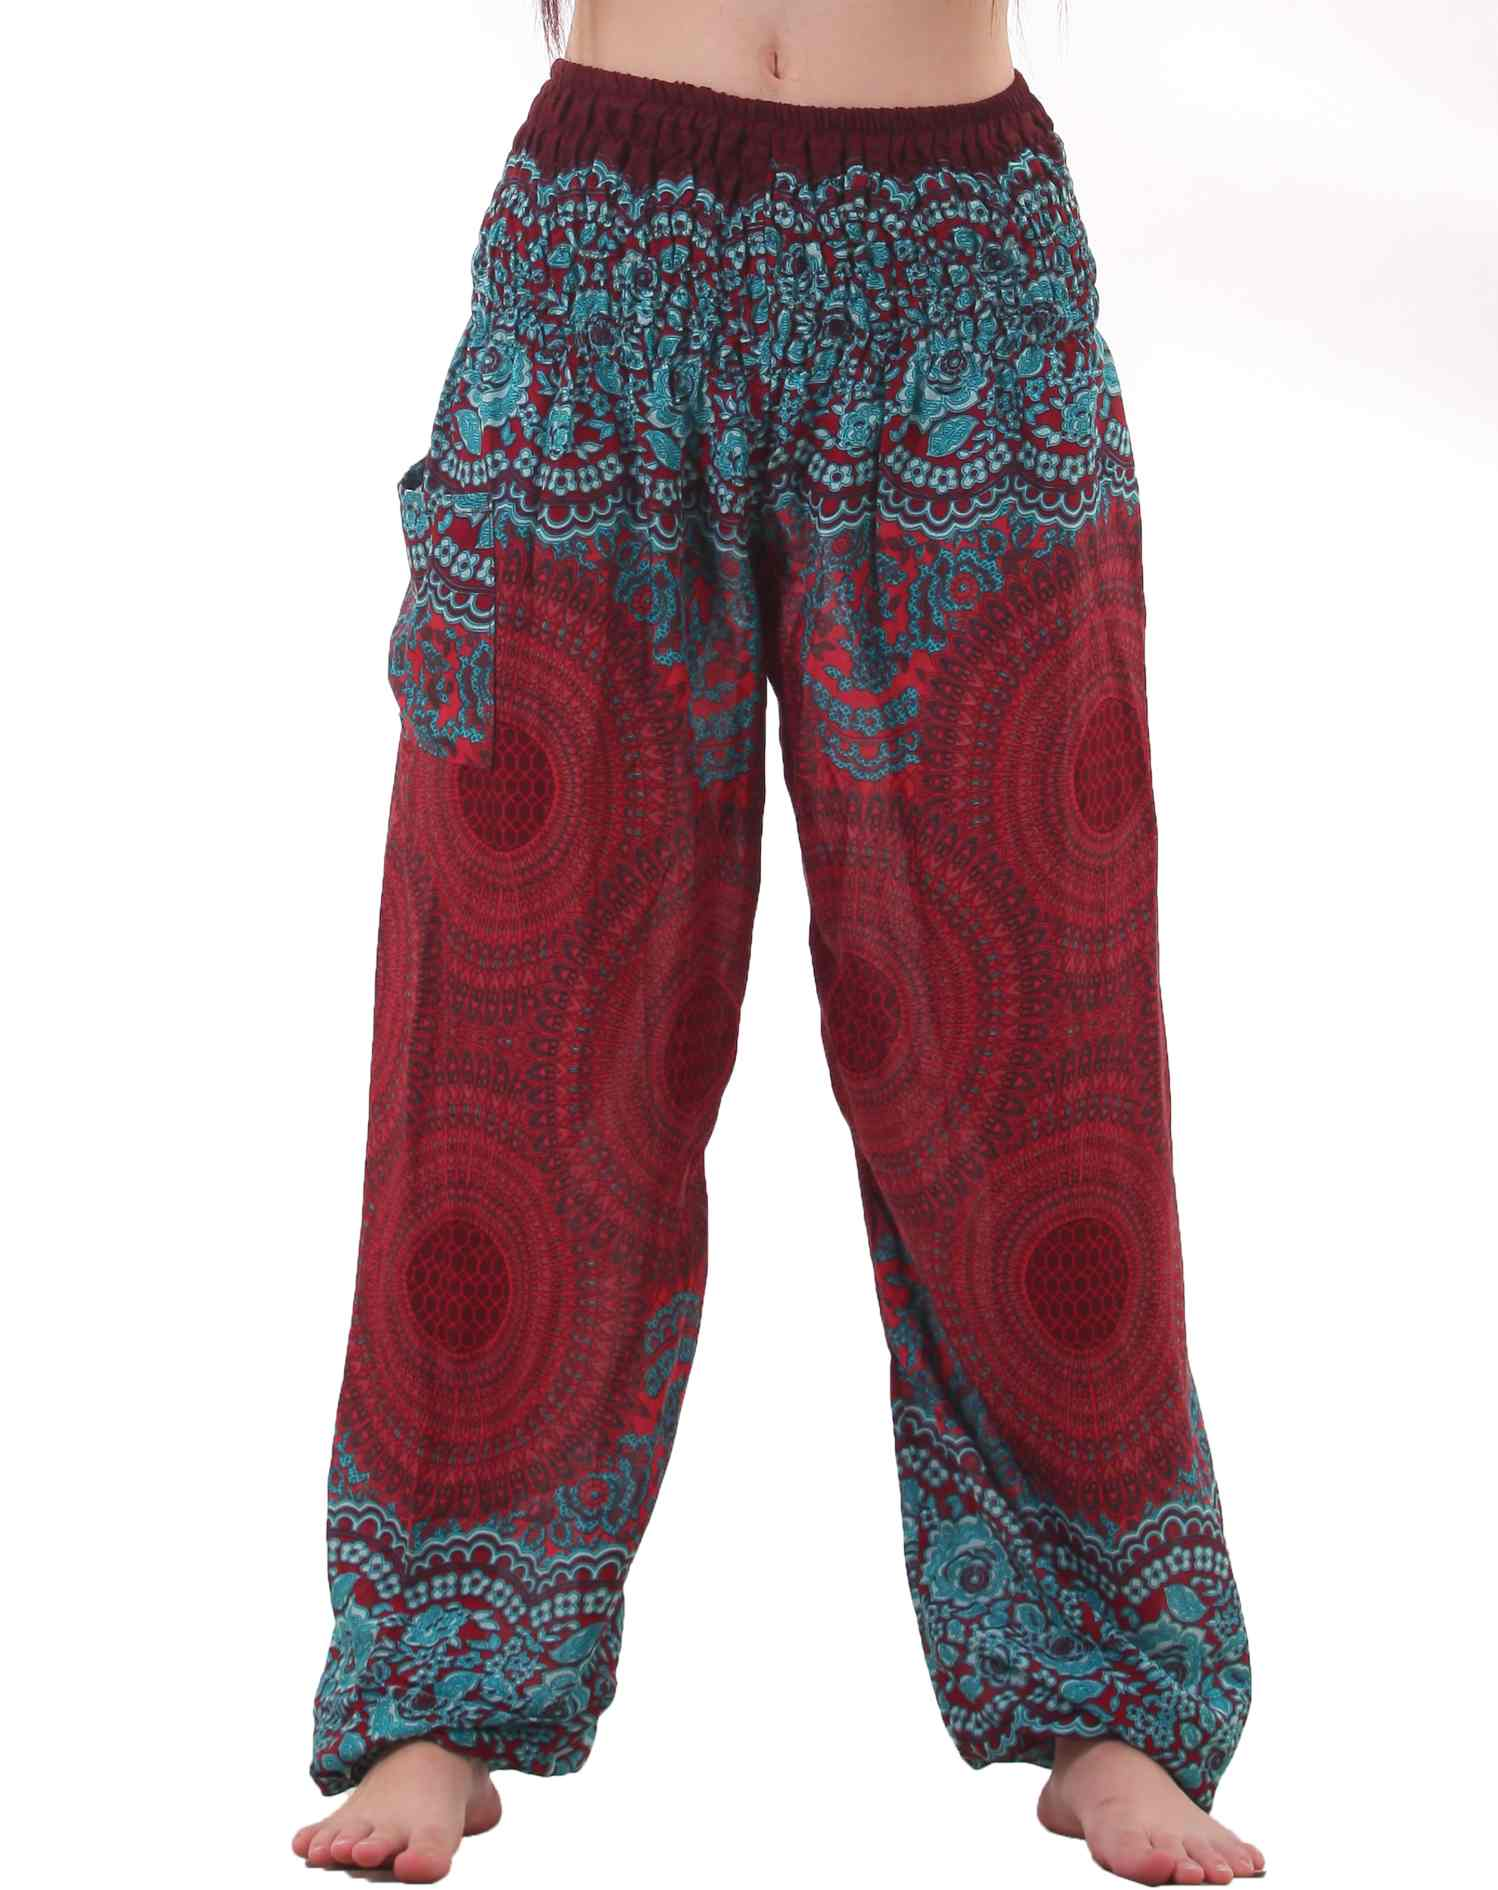 mandala harem hippie pants in red u0026 turquoise LJSHHLC